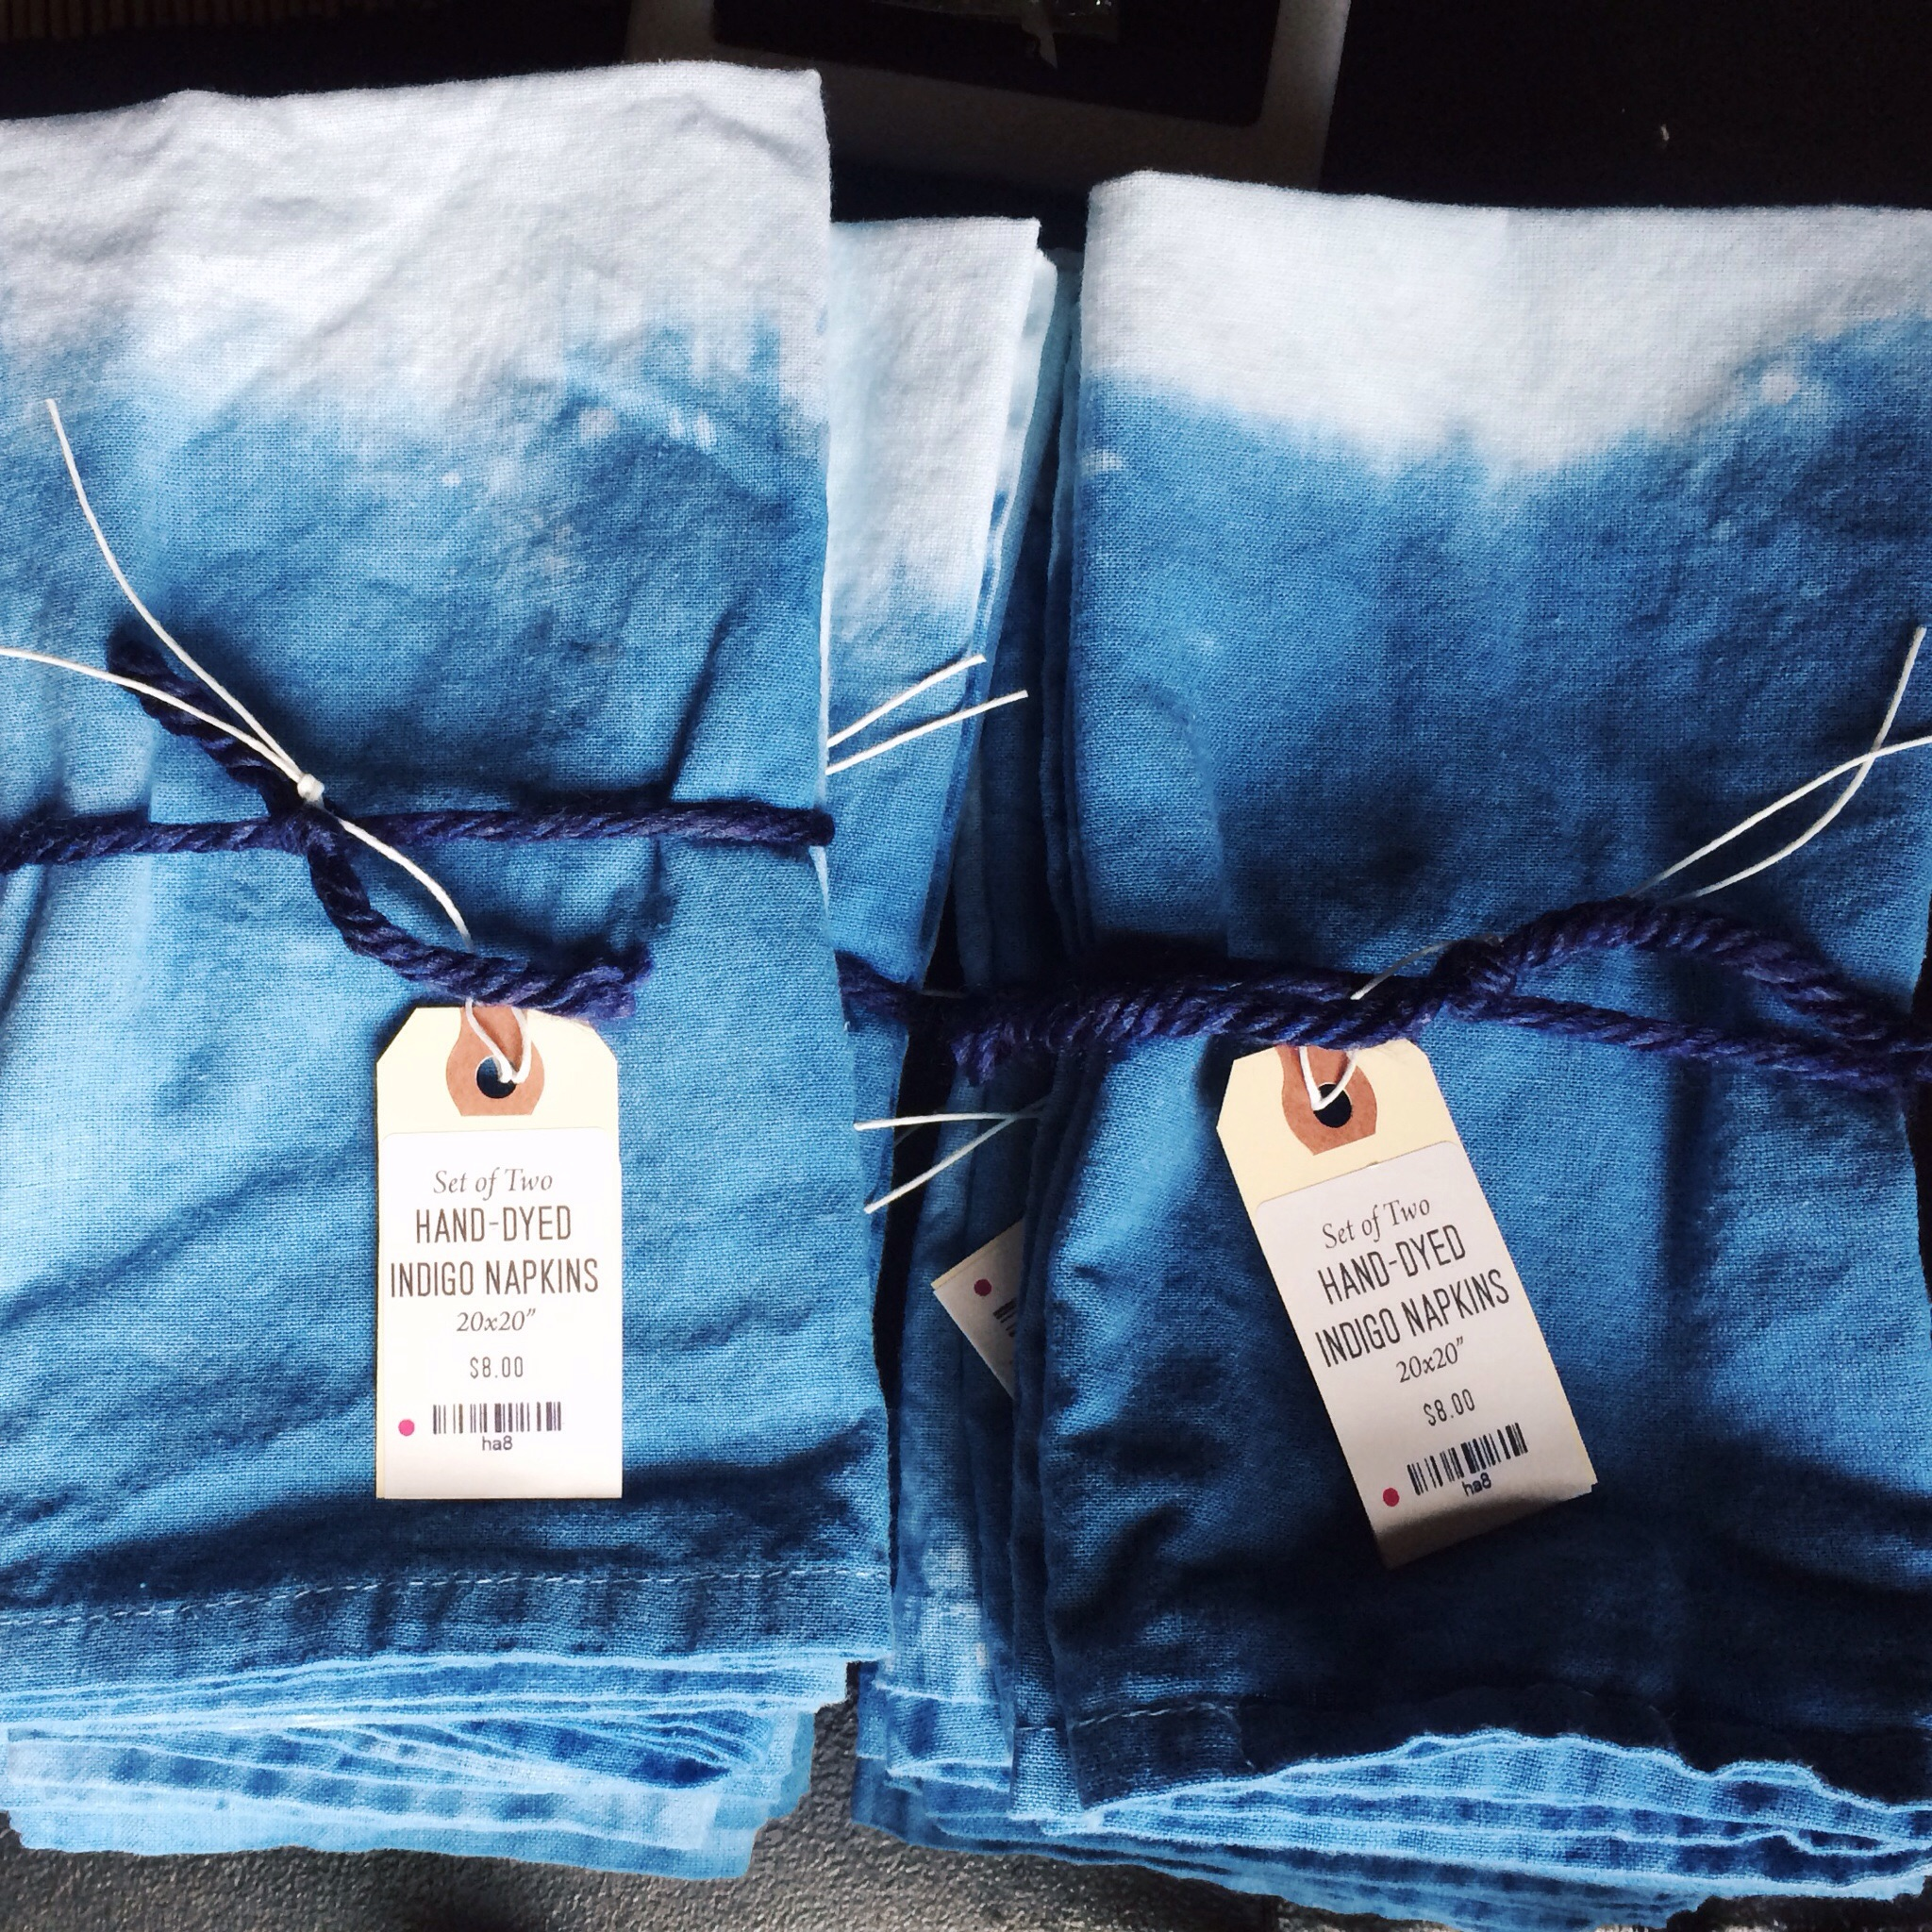 Limited Amount of Indigo Napkins will be Available